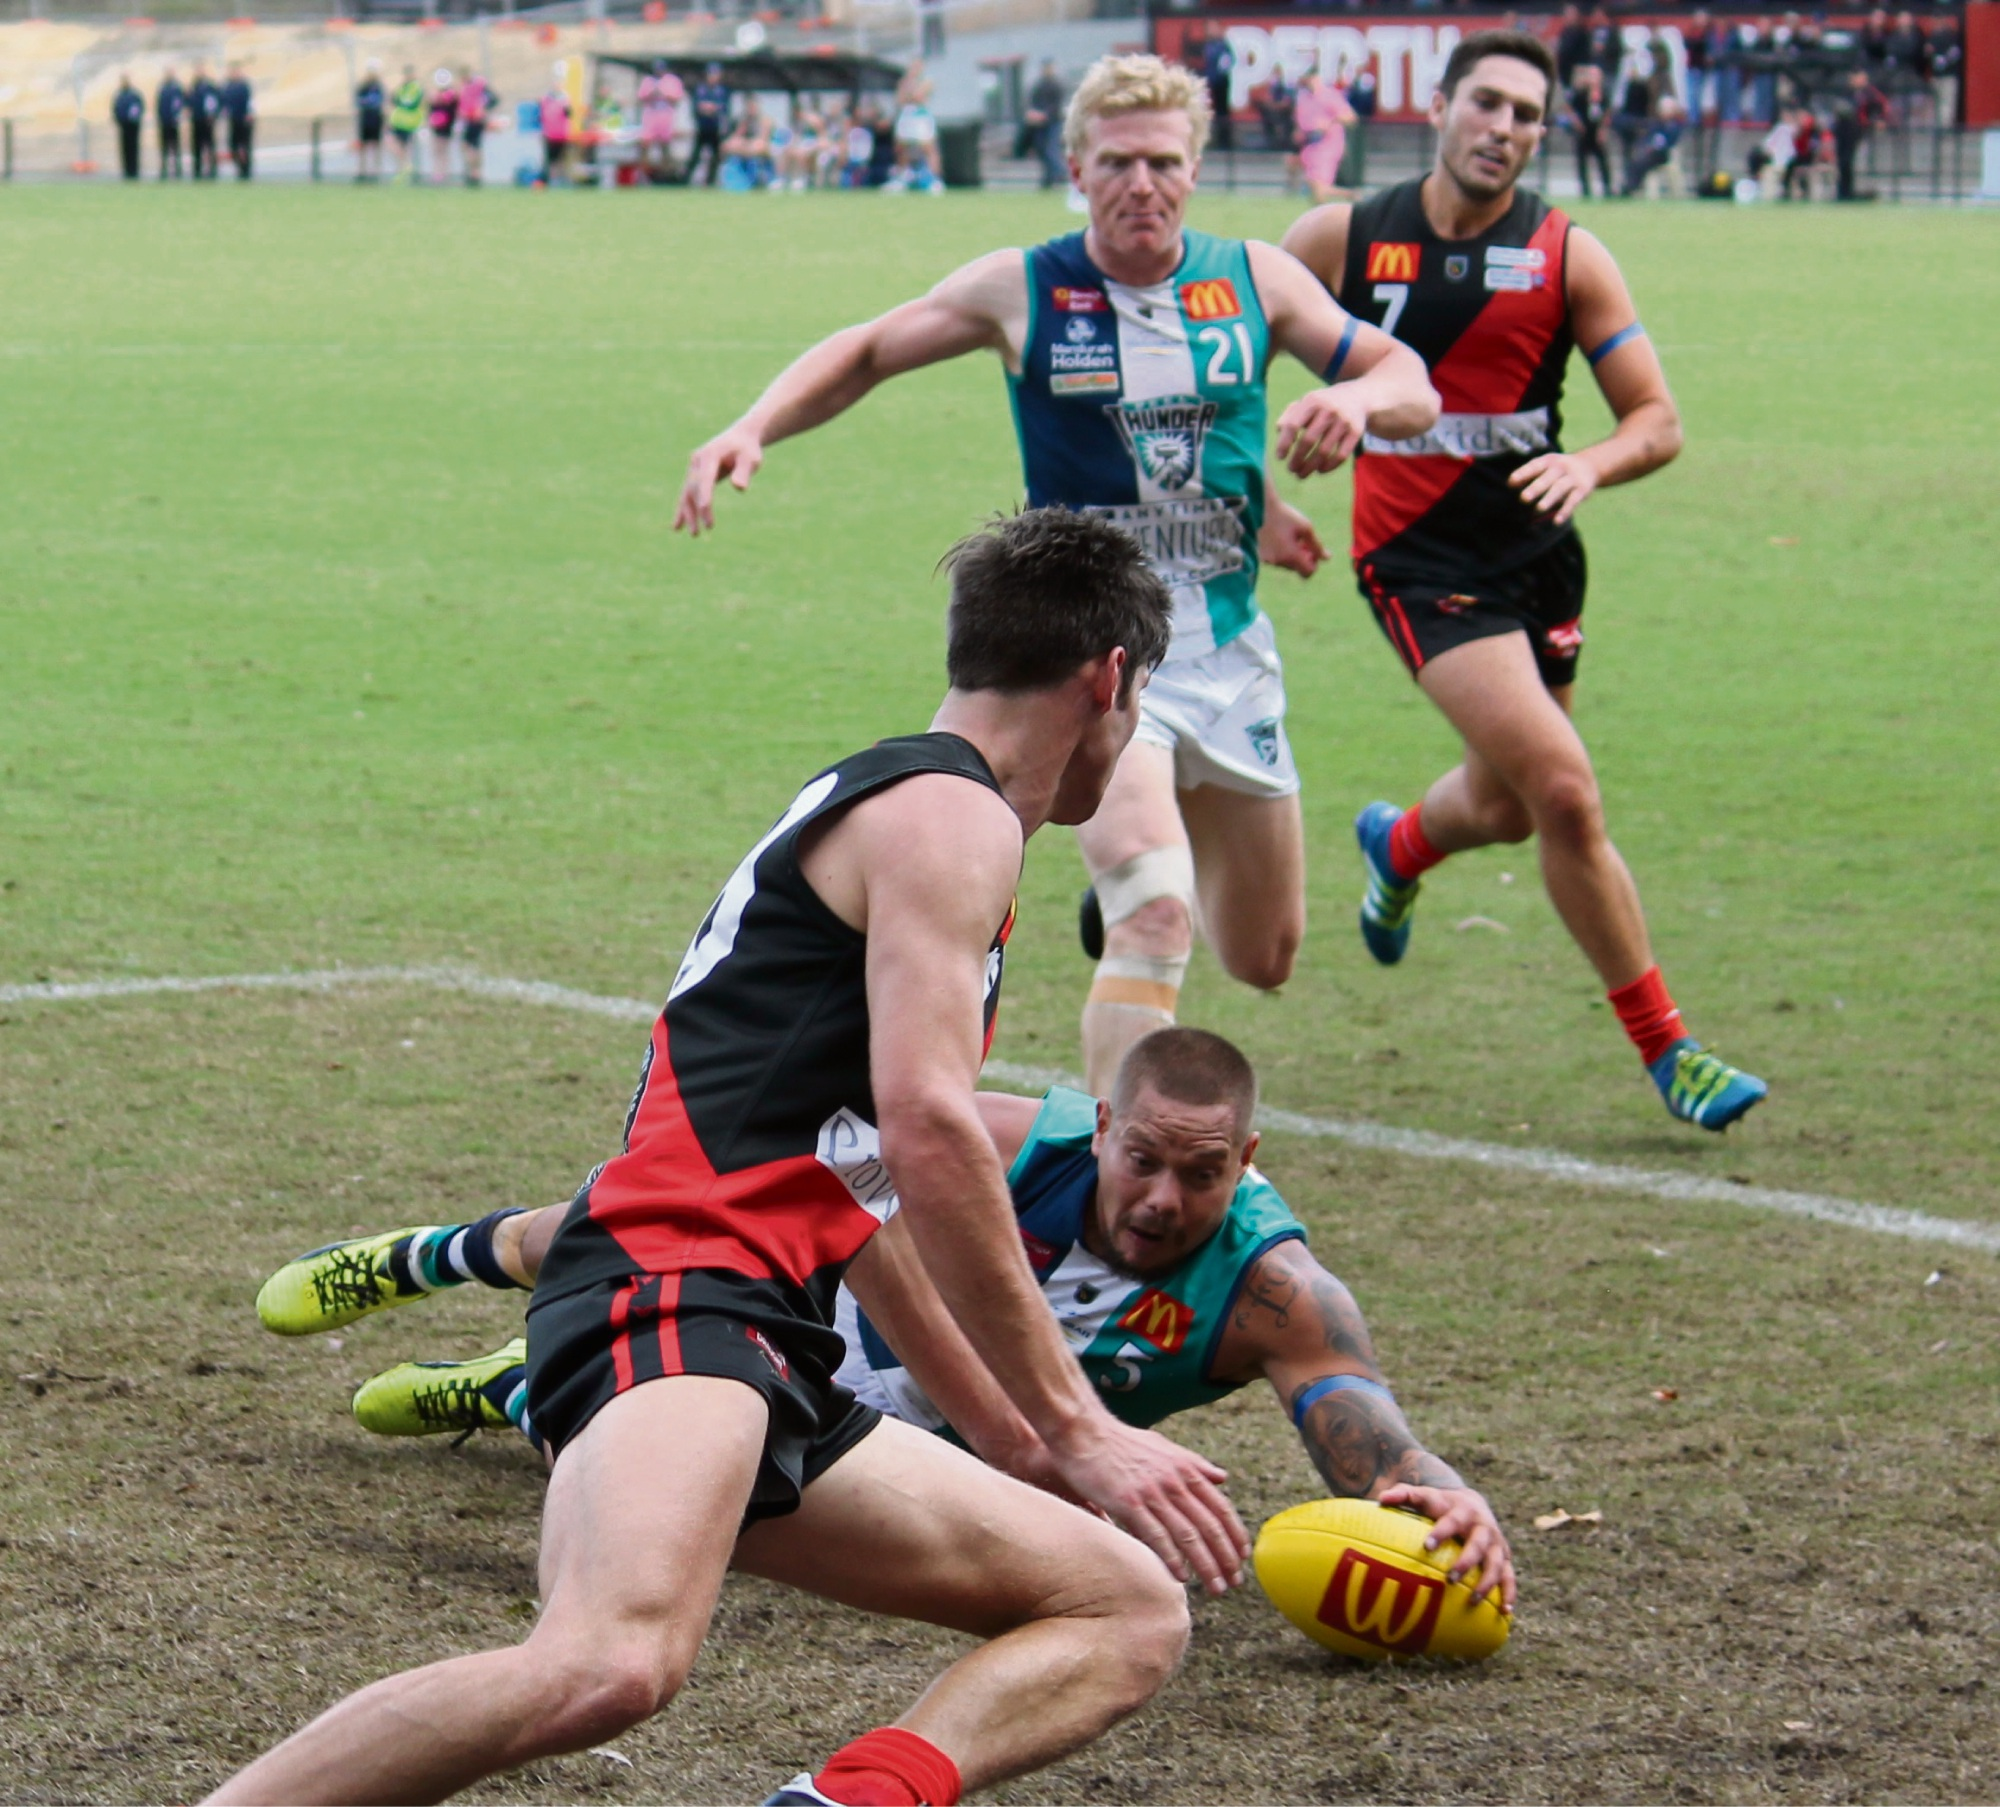 WAFL: Leroy Jetta's spectacular goal the icing on the cake in Peel's biggest ever win